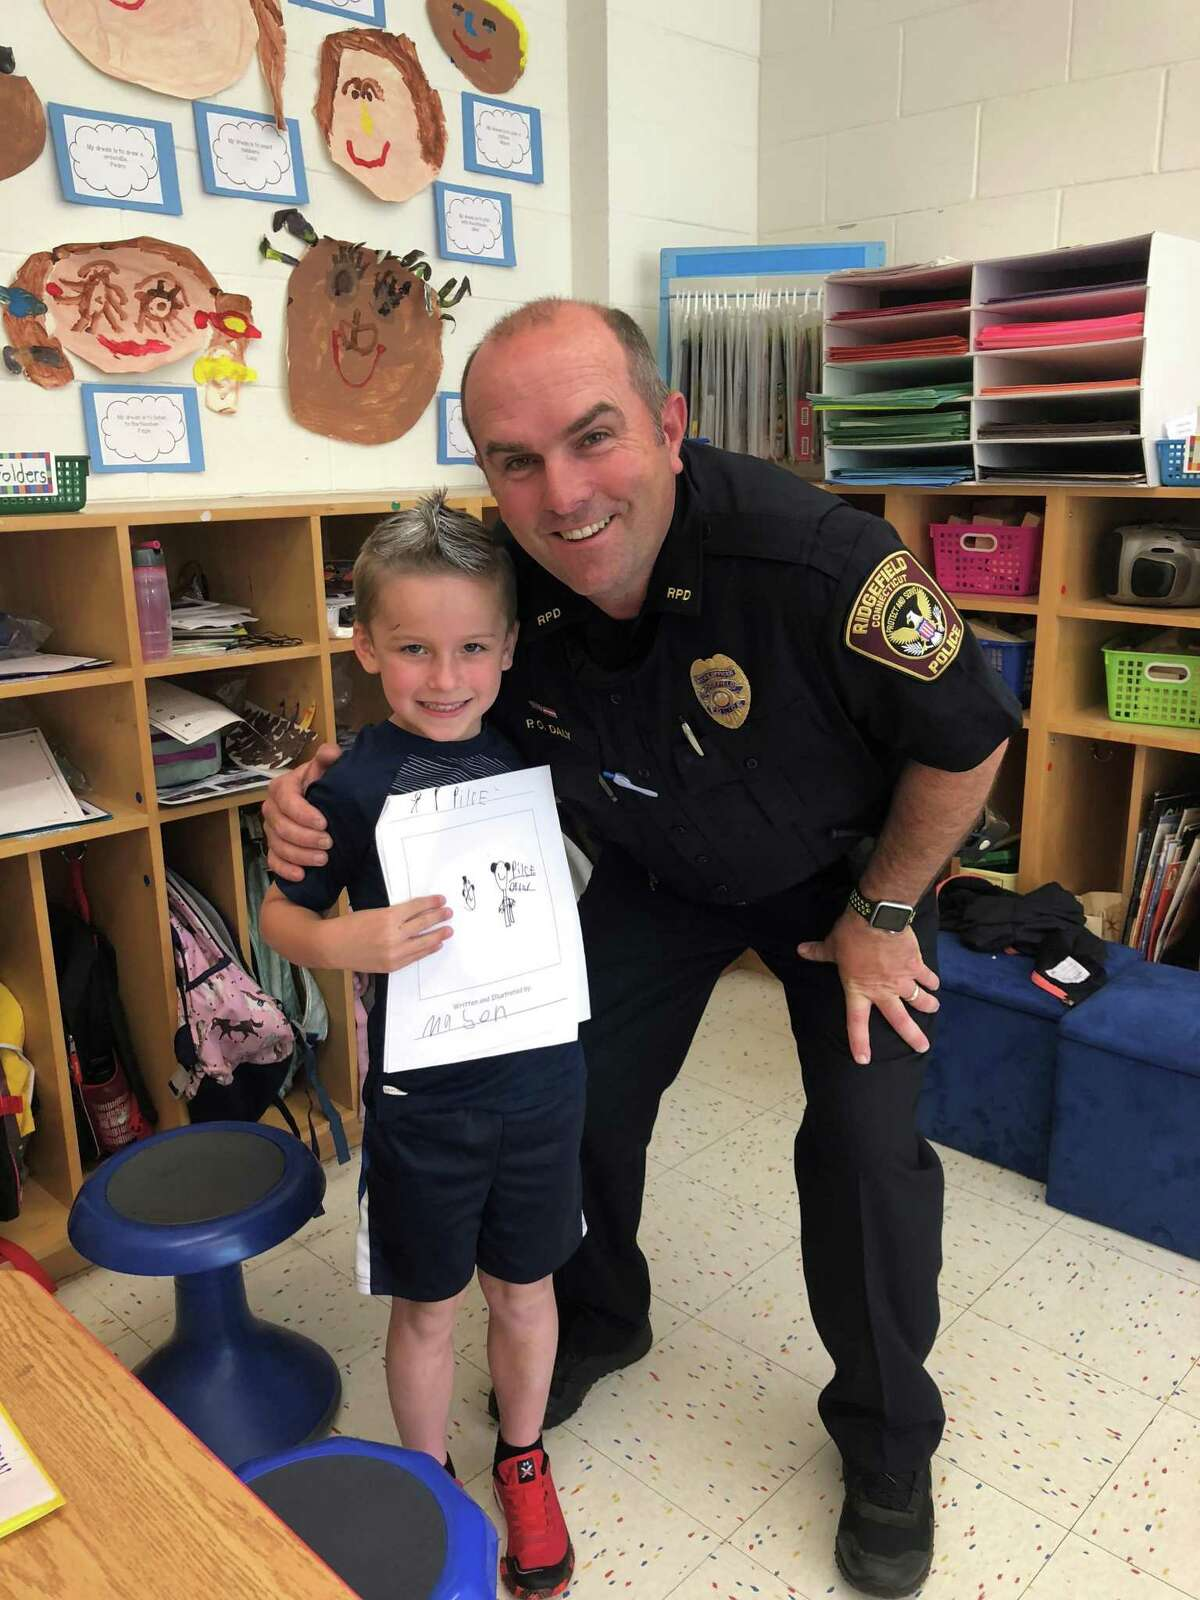 Officer Chris Daly is a school resource officer in the elementary as well as the middle school level.